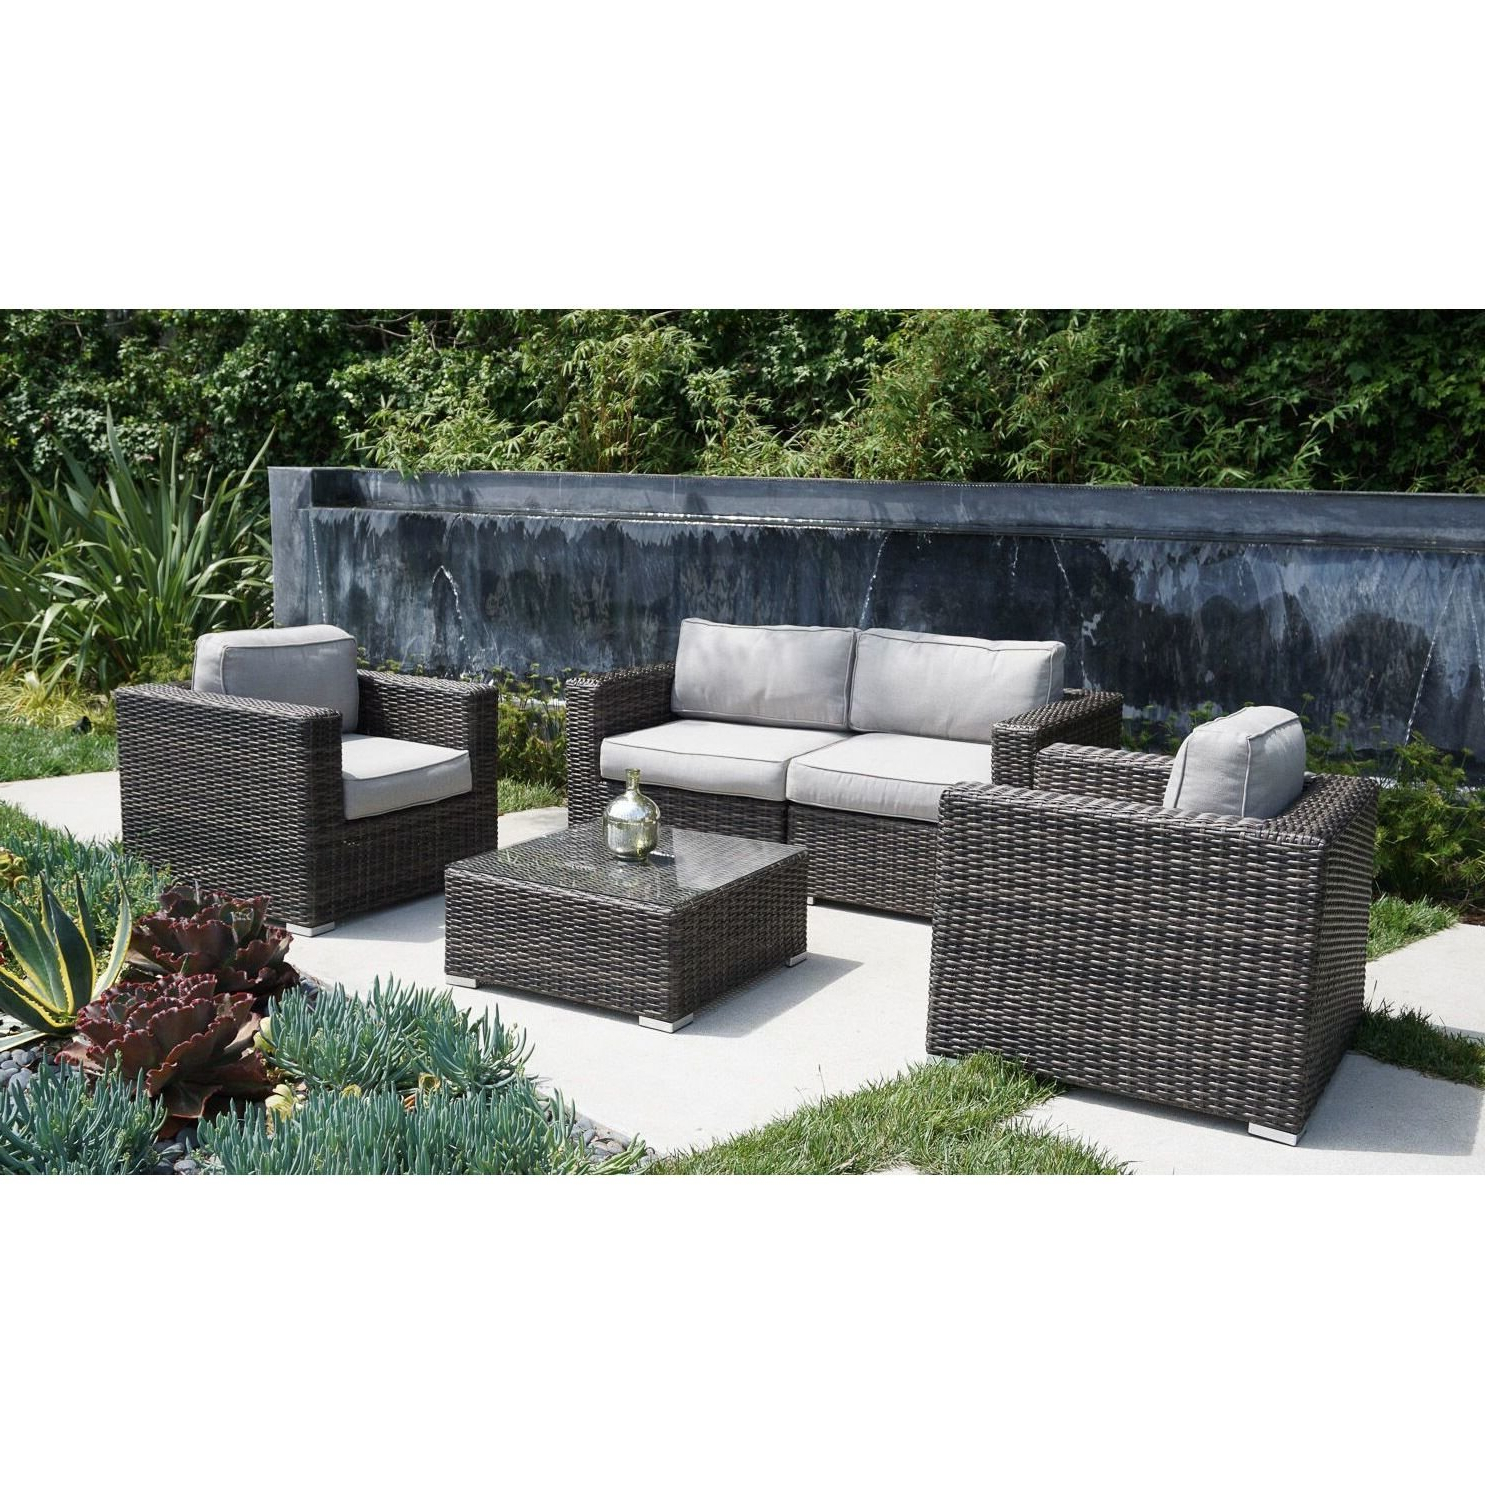 Famous Nolen 5 Piece Rattan Sectional Set With Cushions For Nolen Patio Sectionals With Cushions (View 2 of 20)